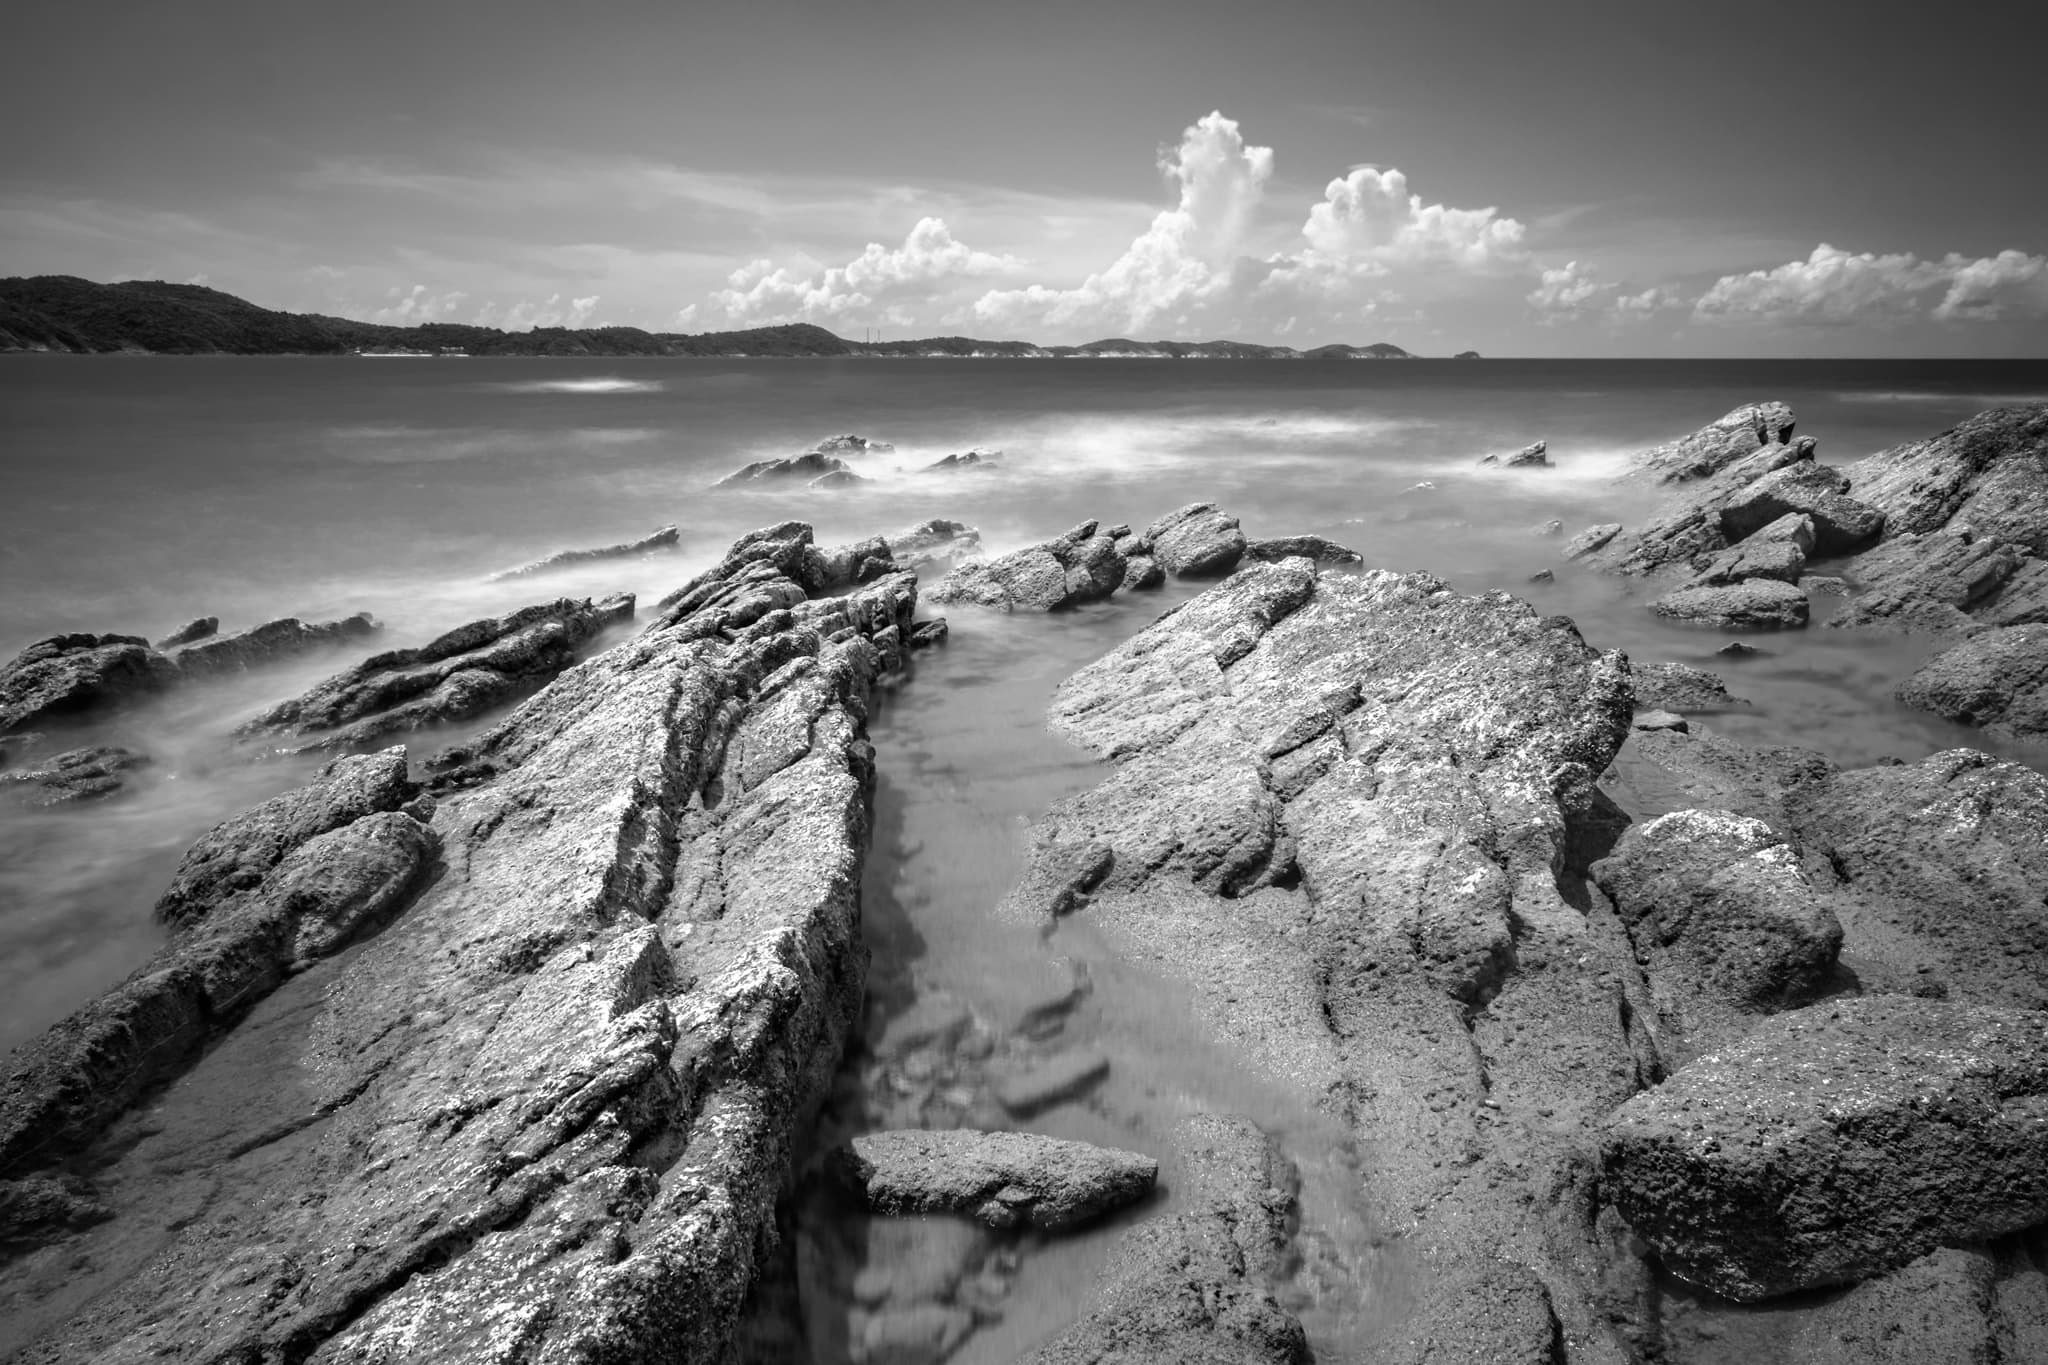 Black & white long exposure of rocky beach at Ban Phe. Rayong, Thailand. Smooth and silky sea water in contrast with rocky beach.